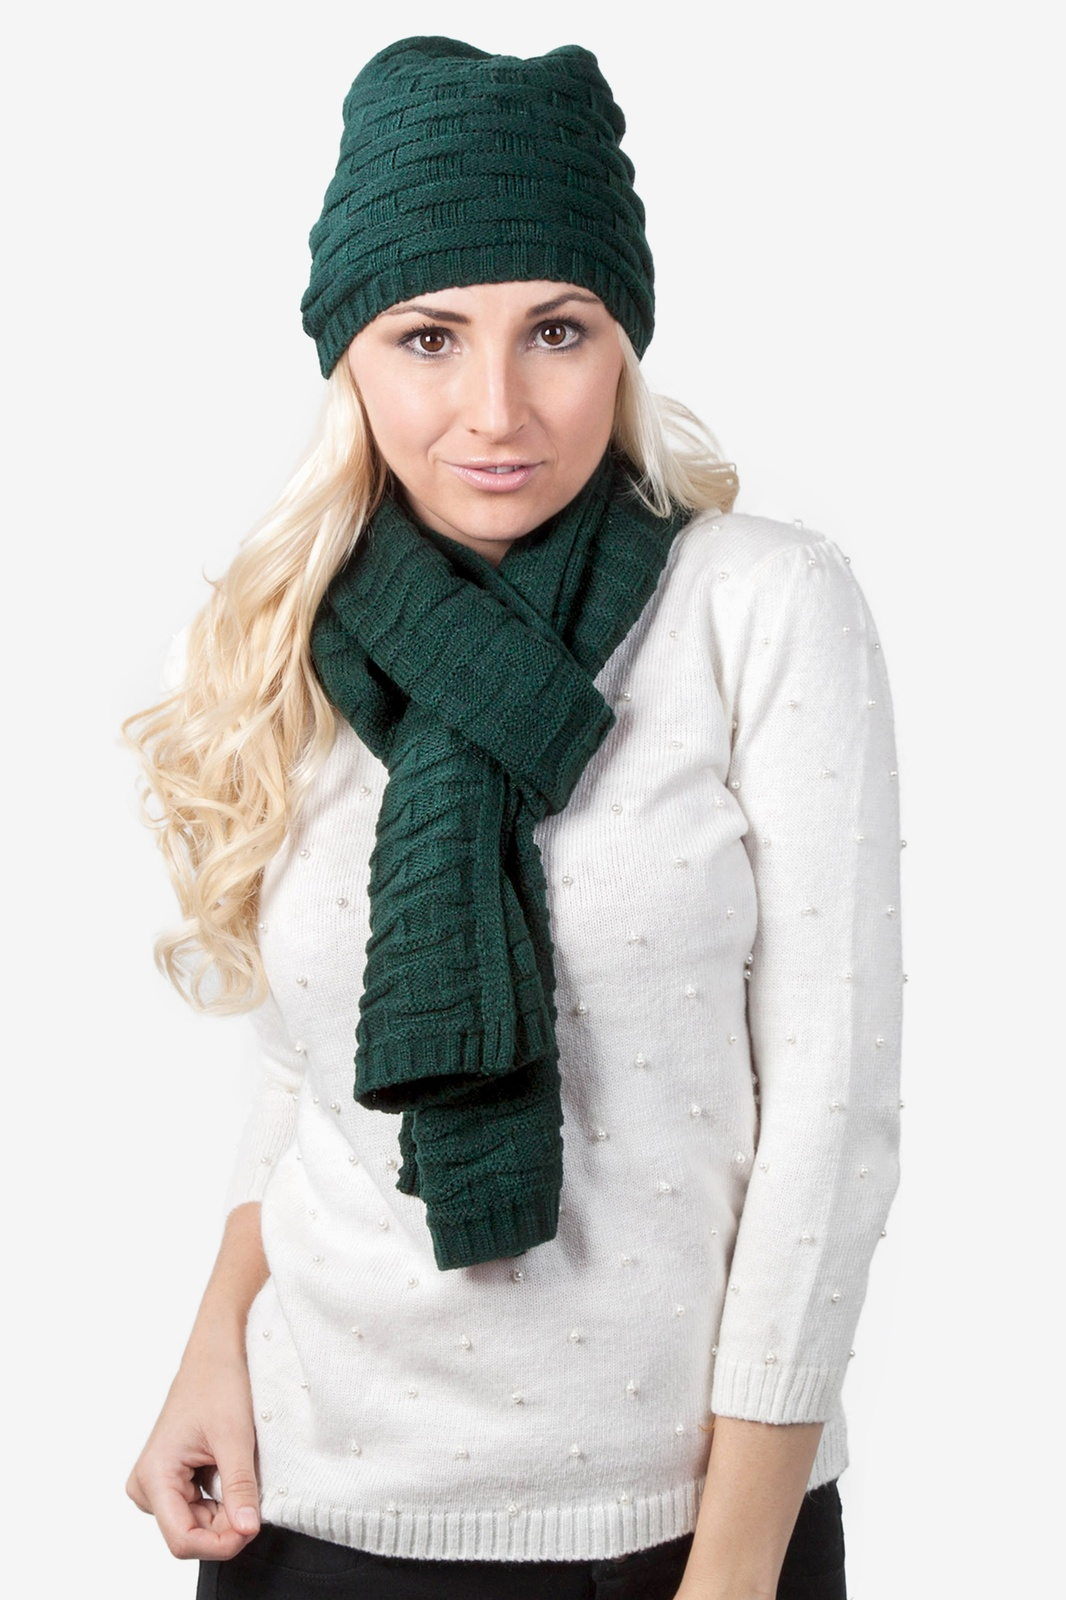 Basketweave Scarf And Hat Set by Scarves.com bb6bca82b2c